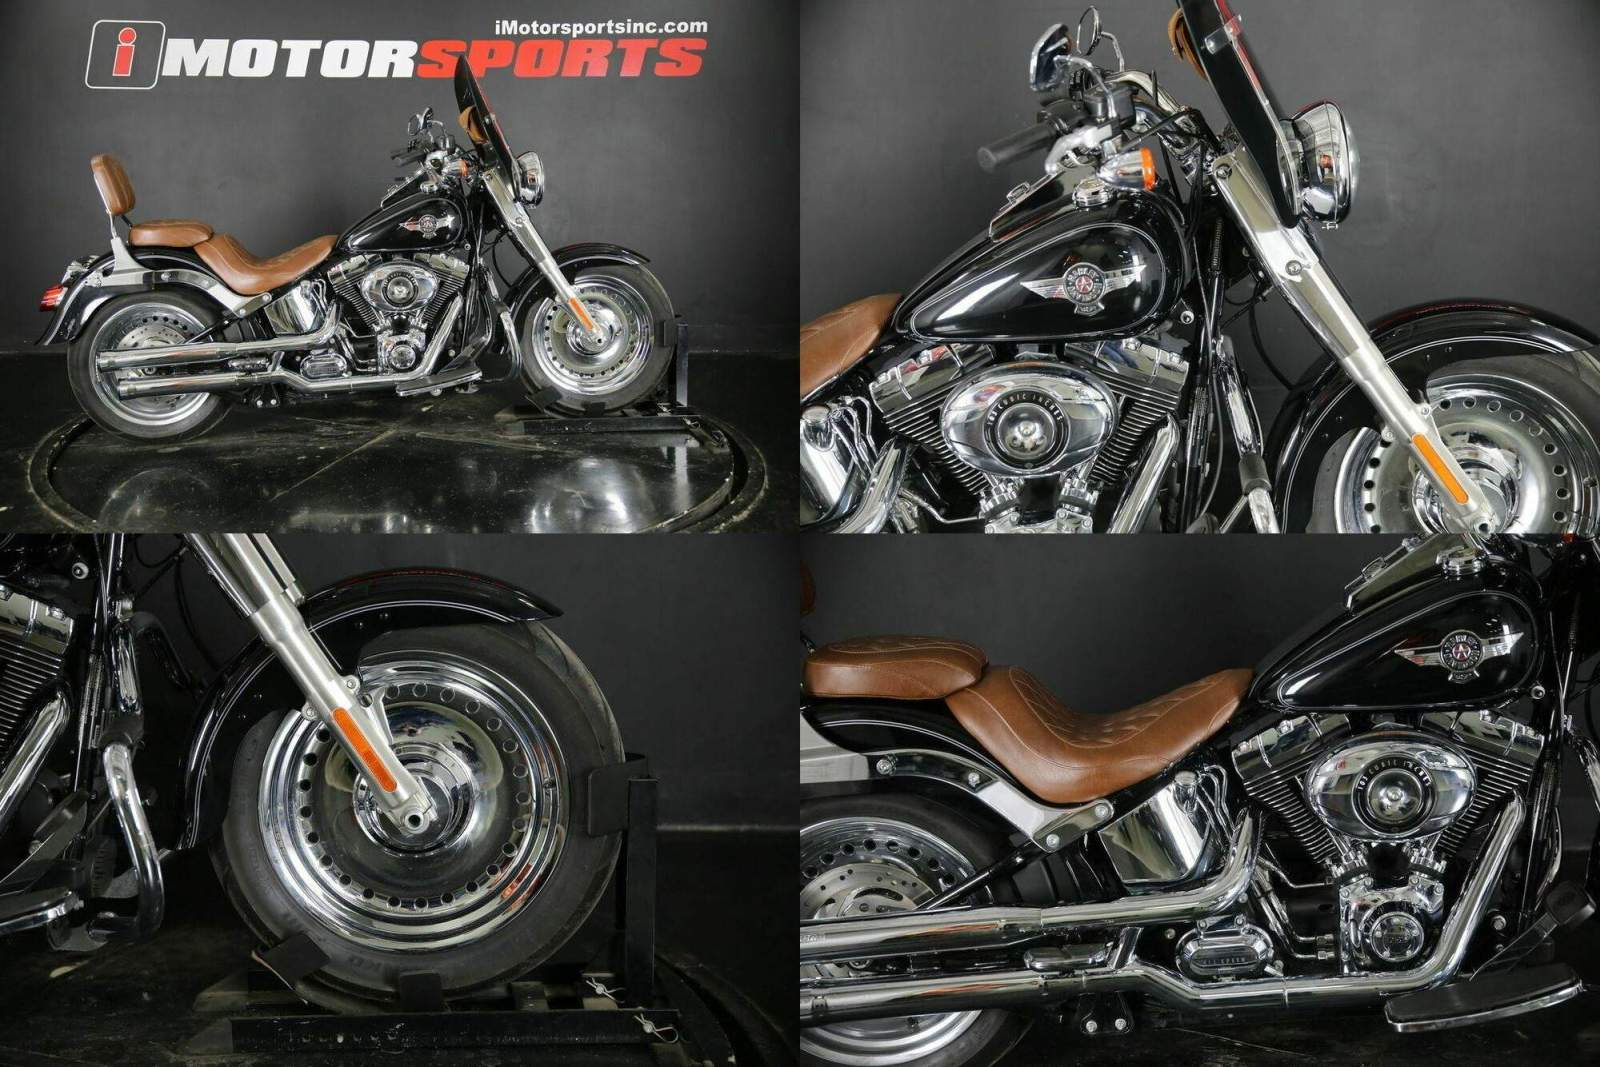 2014 Harley Davidson FLSTF   Softail Fat Boy   for sale craigslist